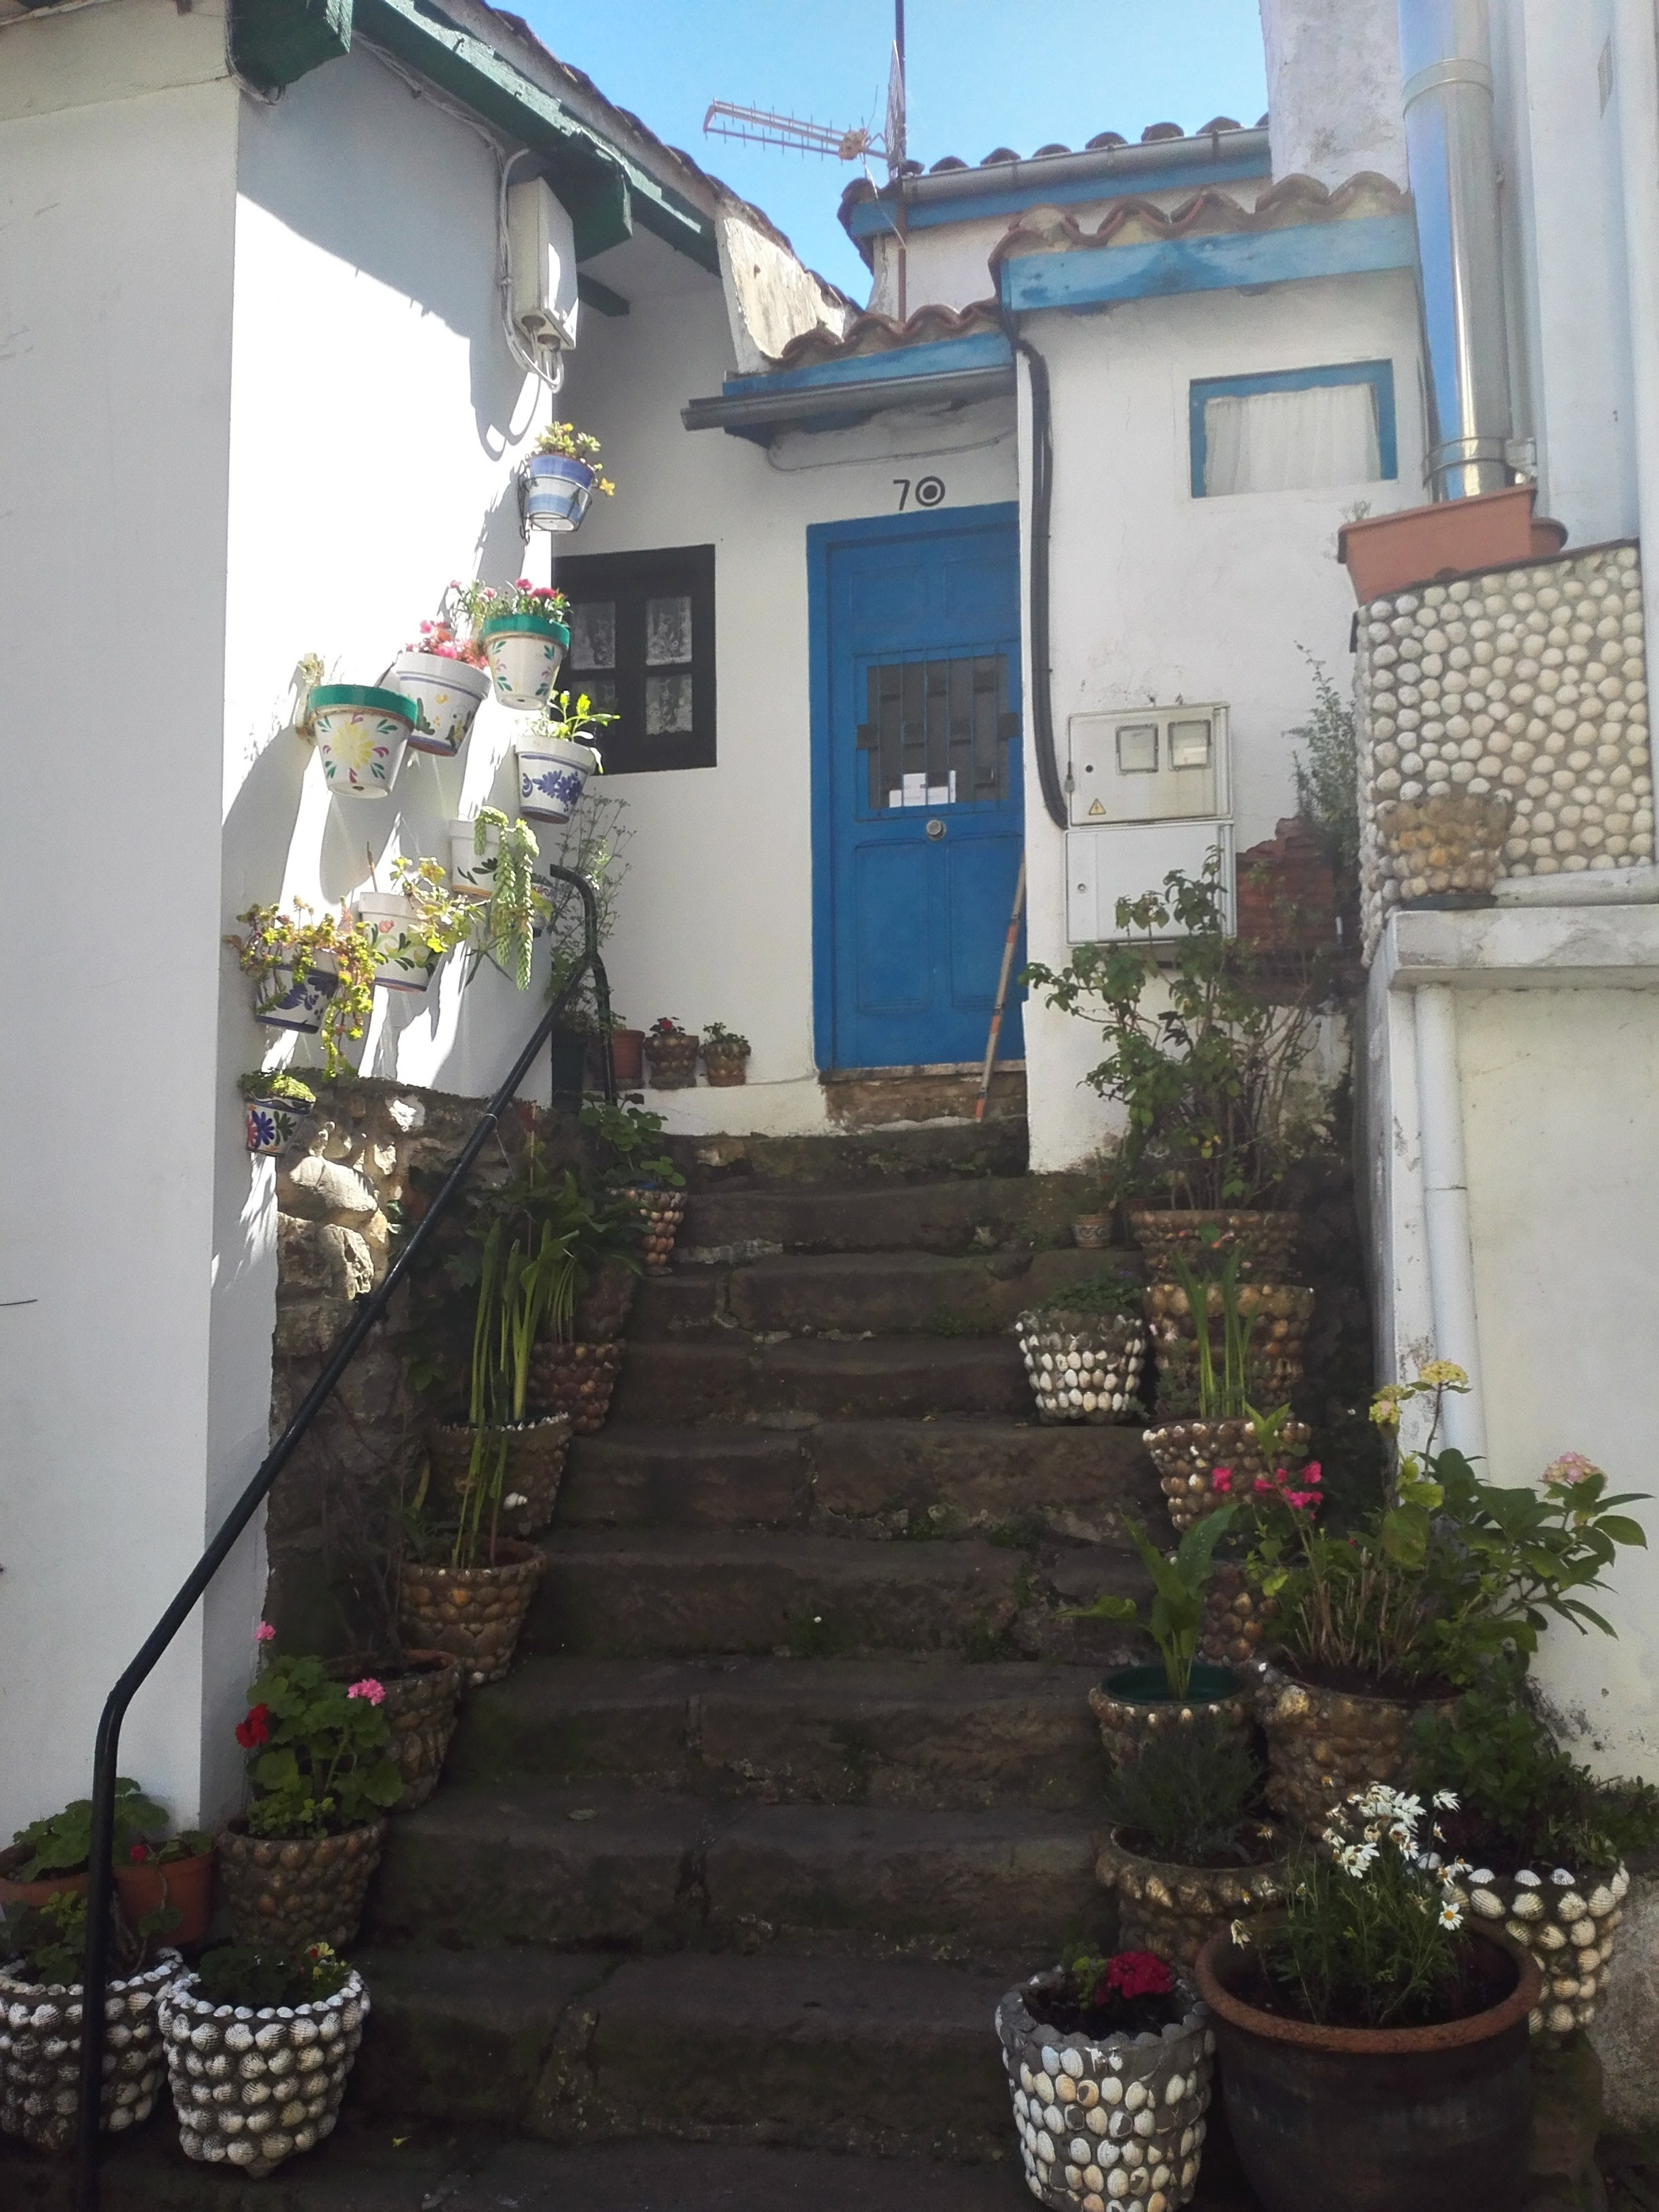 Another cute cottage in Tazones